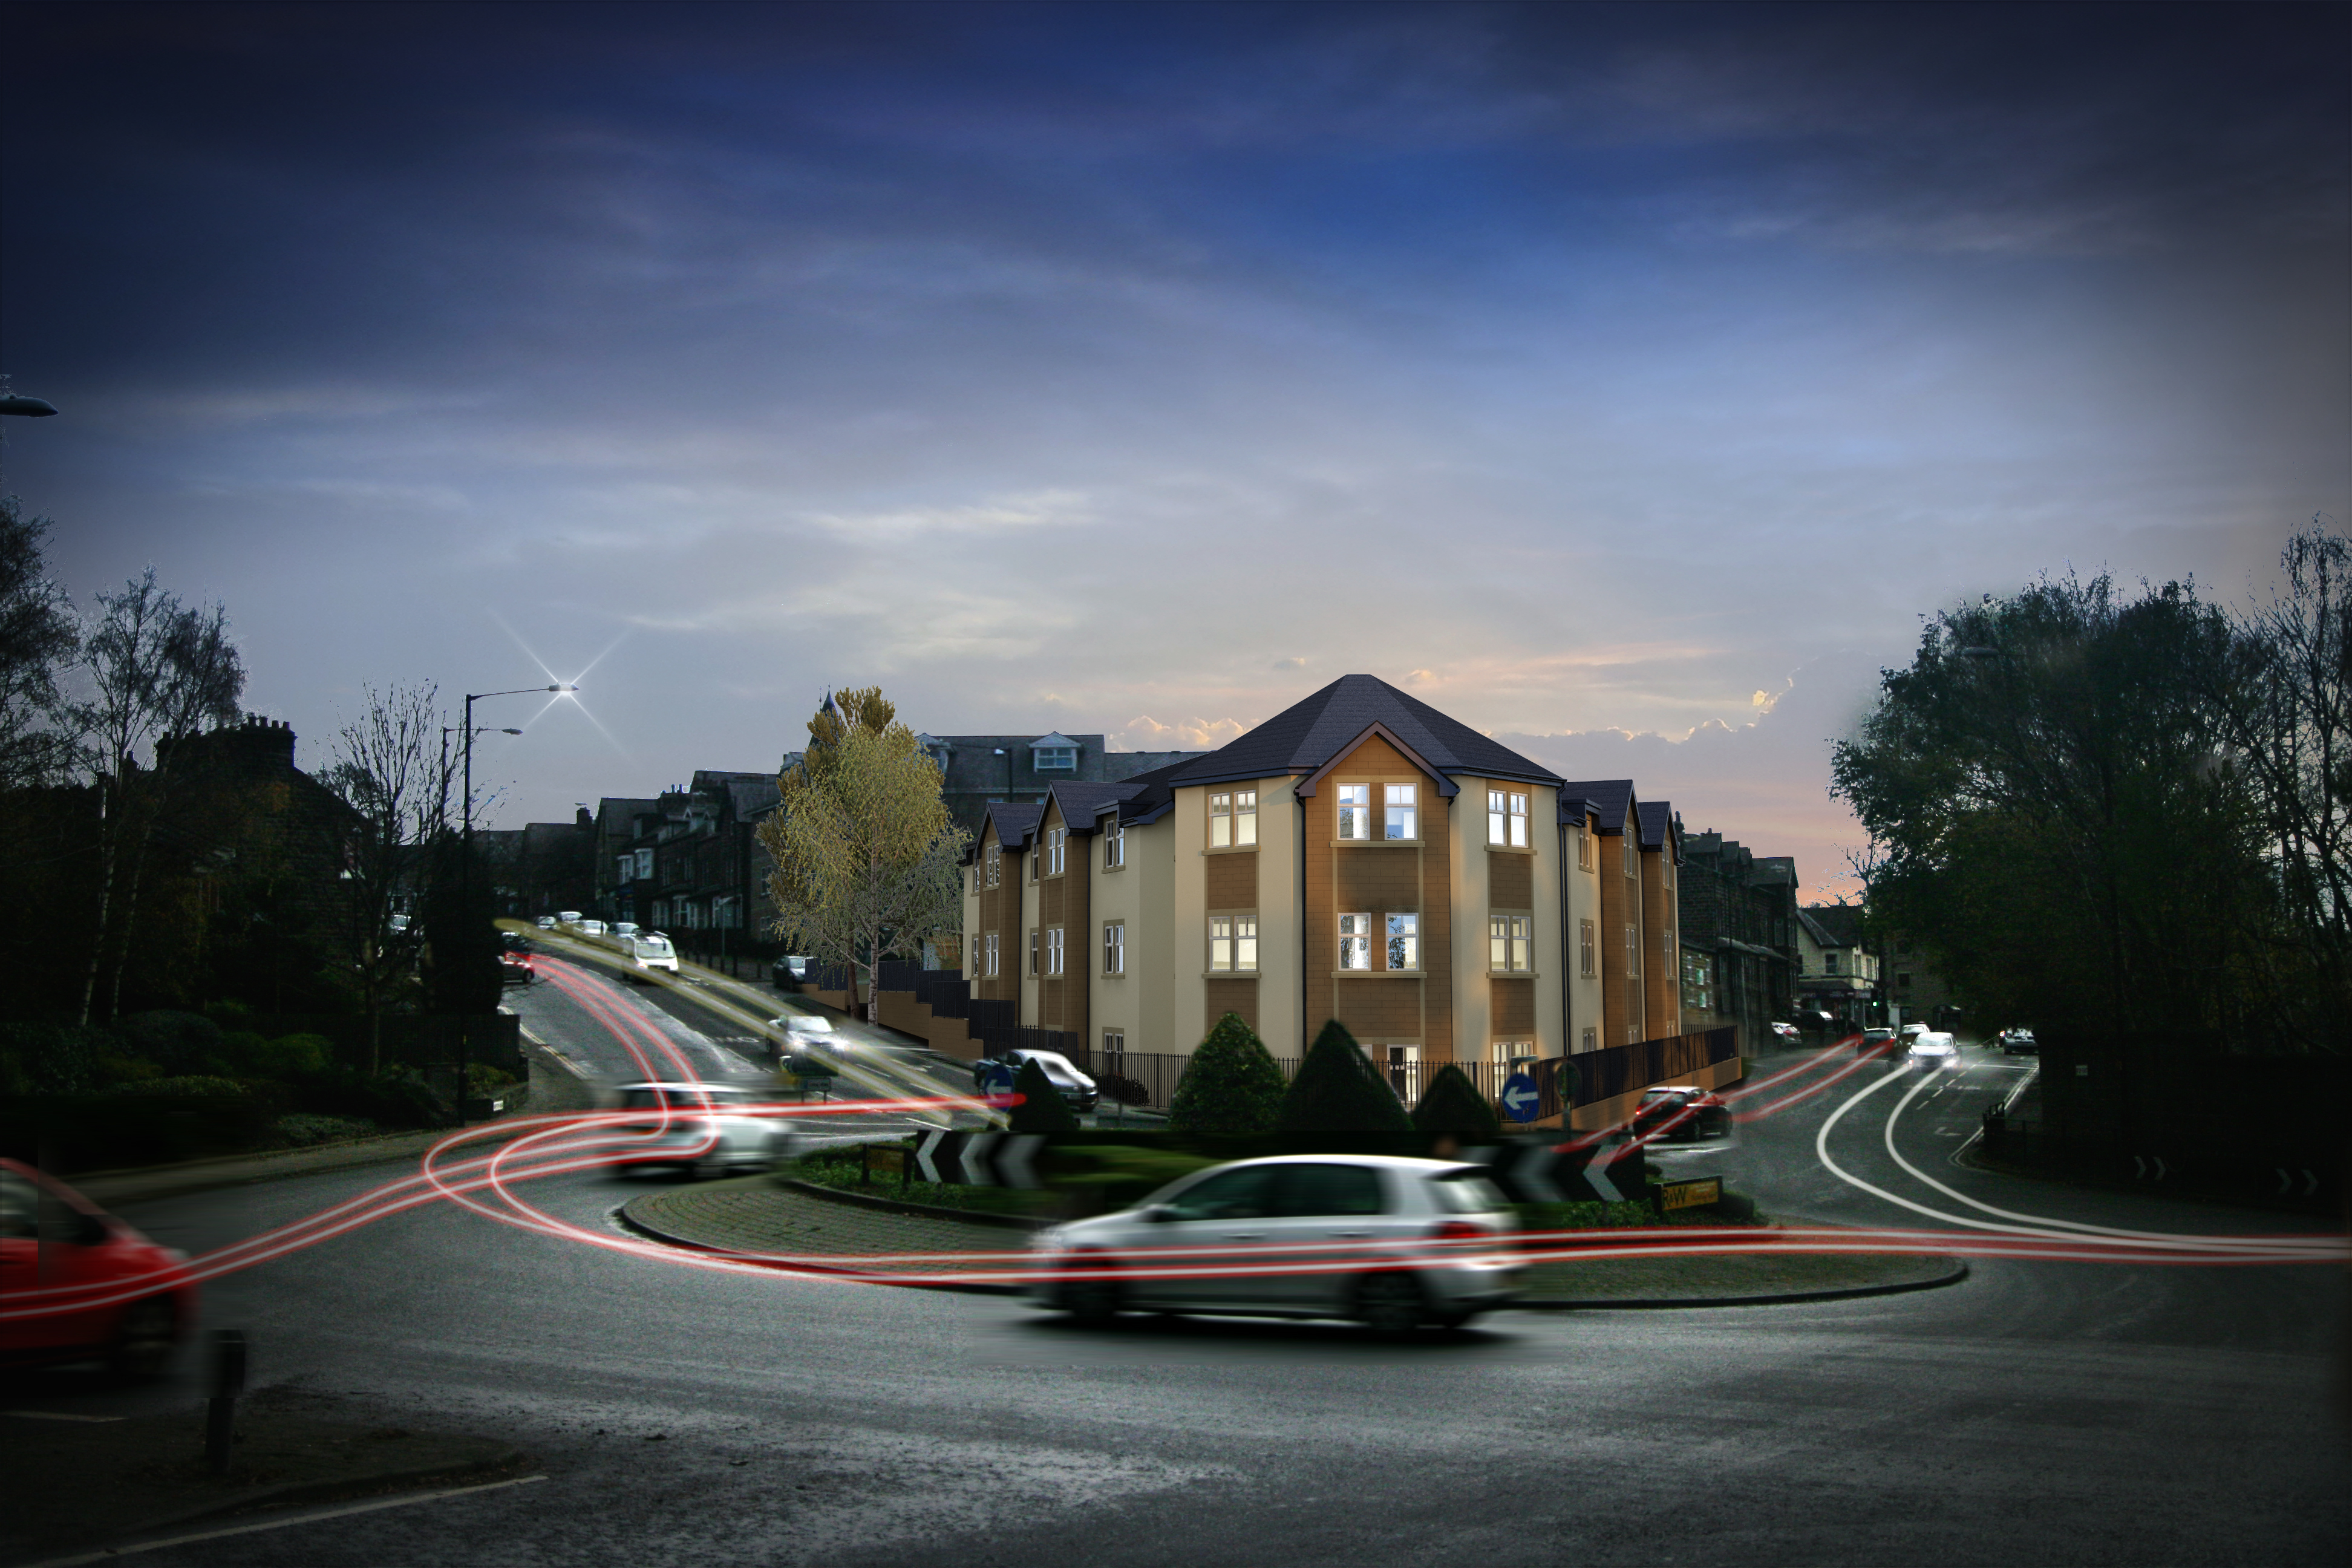 With 50% of homes sold, new Harrogate development is hardly an outside bet